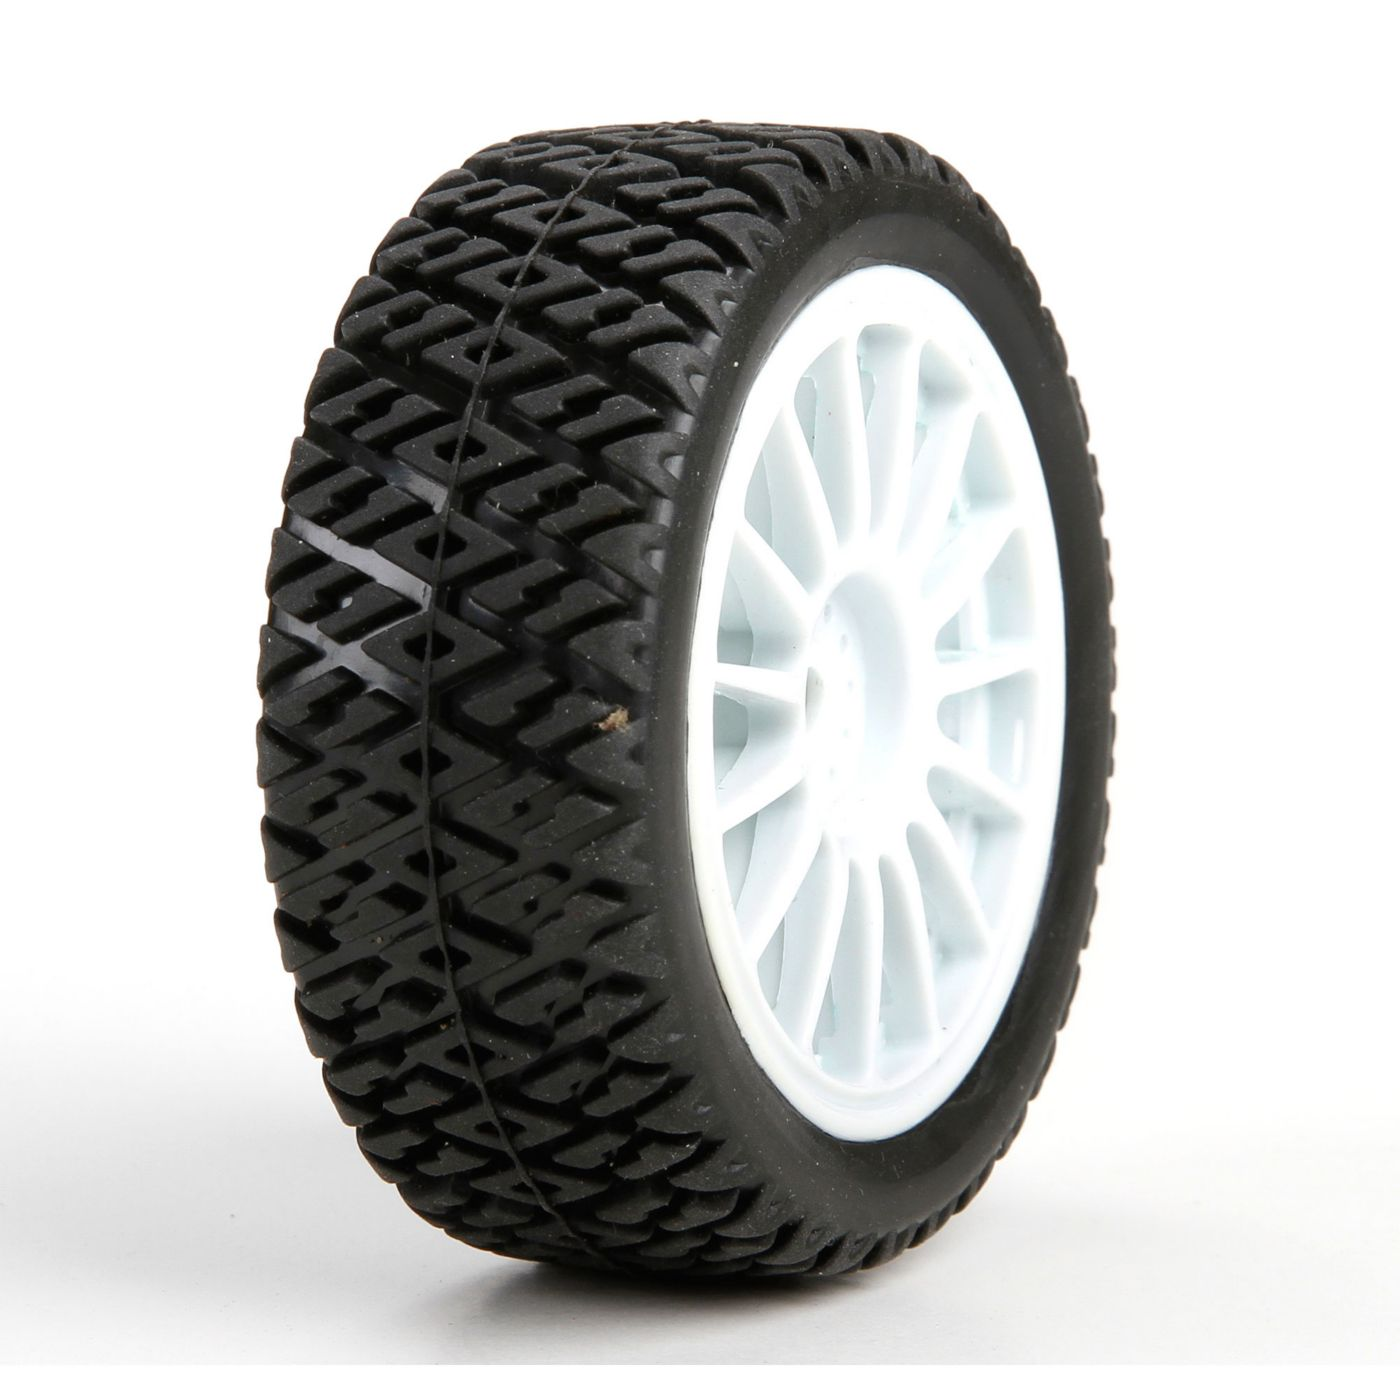 FF/RR Gravel Spec Tire,(2) Mounted: Mini Rally